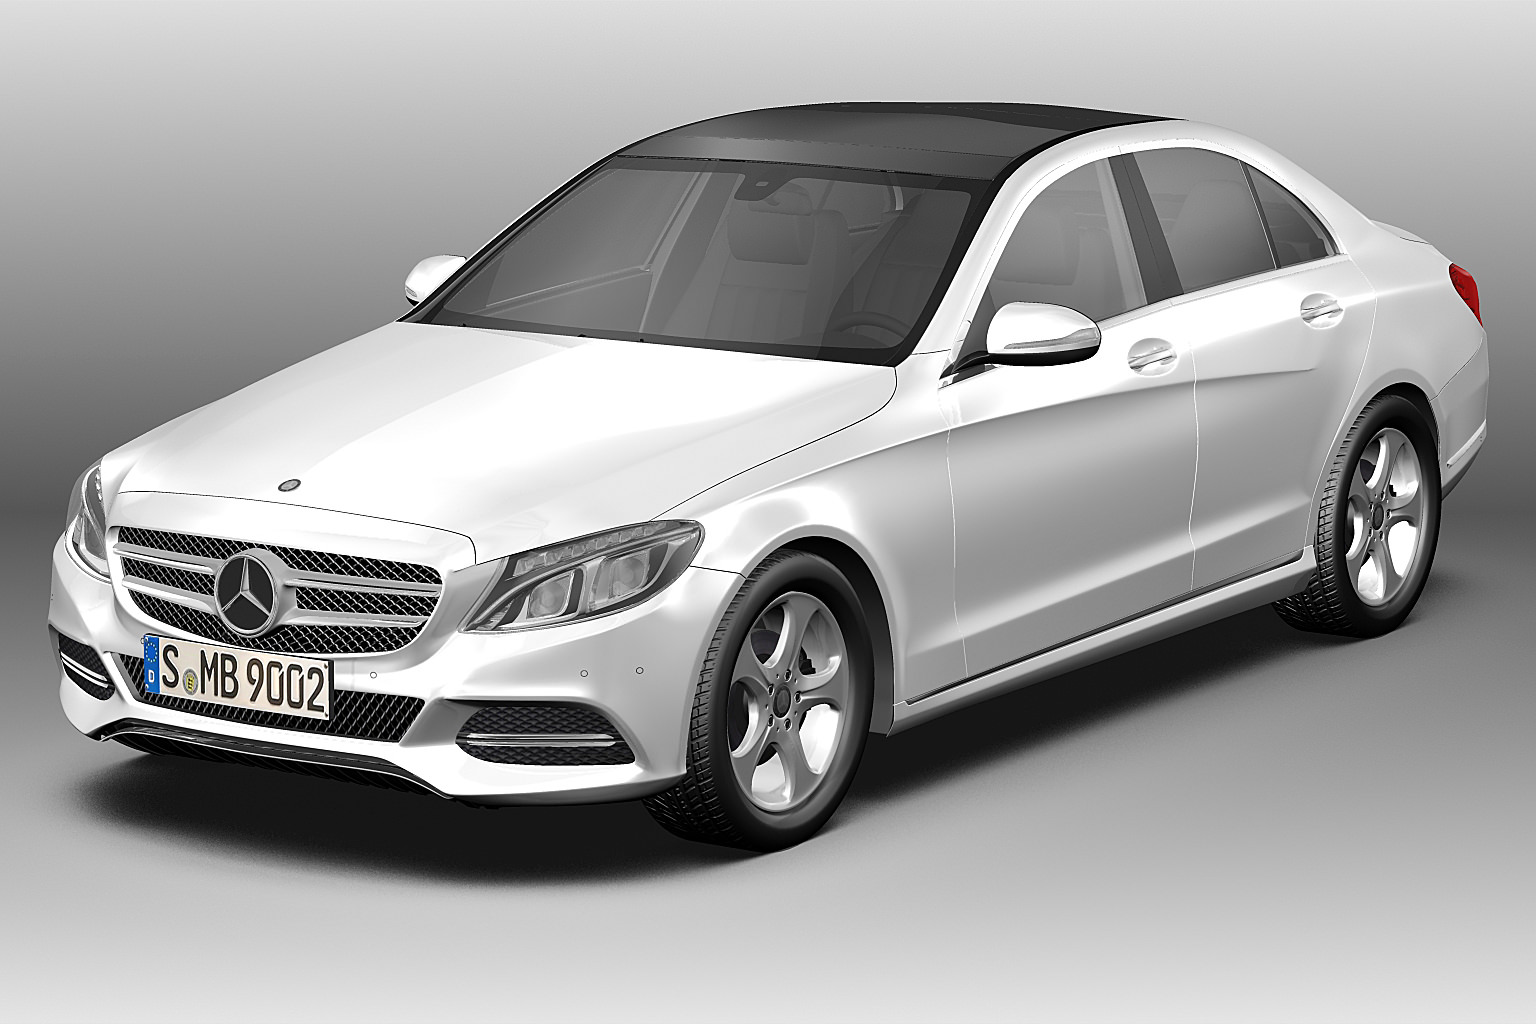 2014 mercedes benz c class 3d model max obj 3ds fbx c4d for Benz mercedes c class